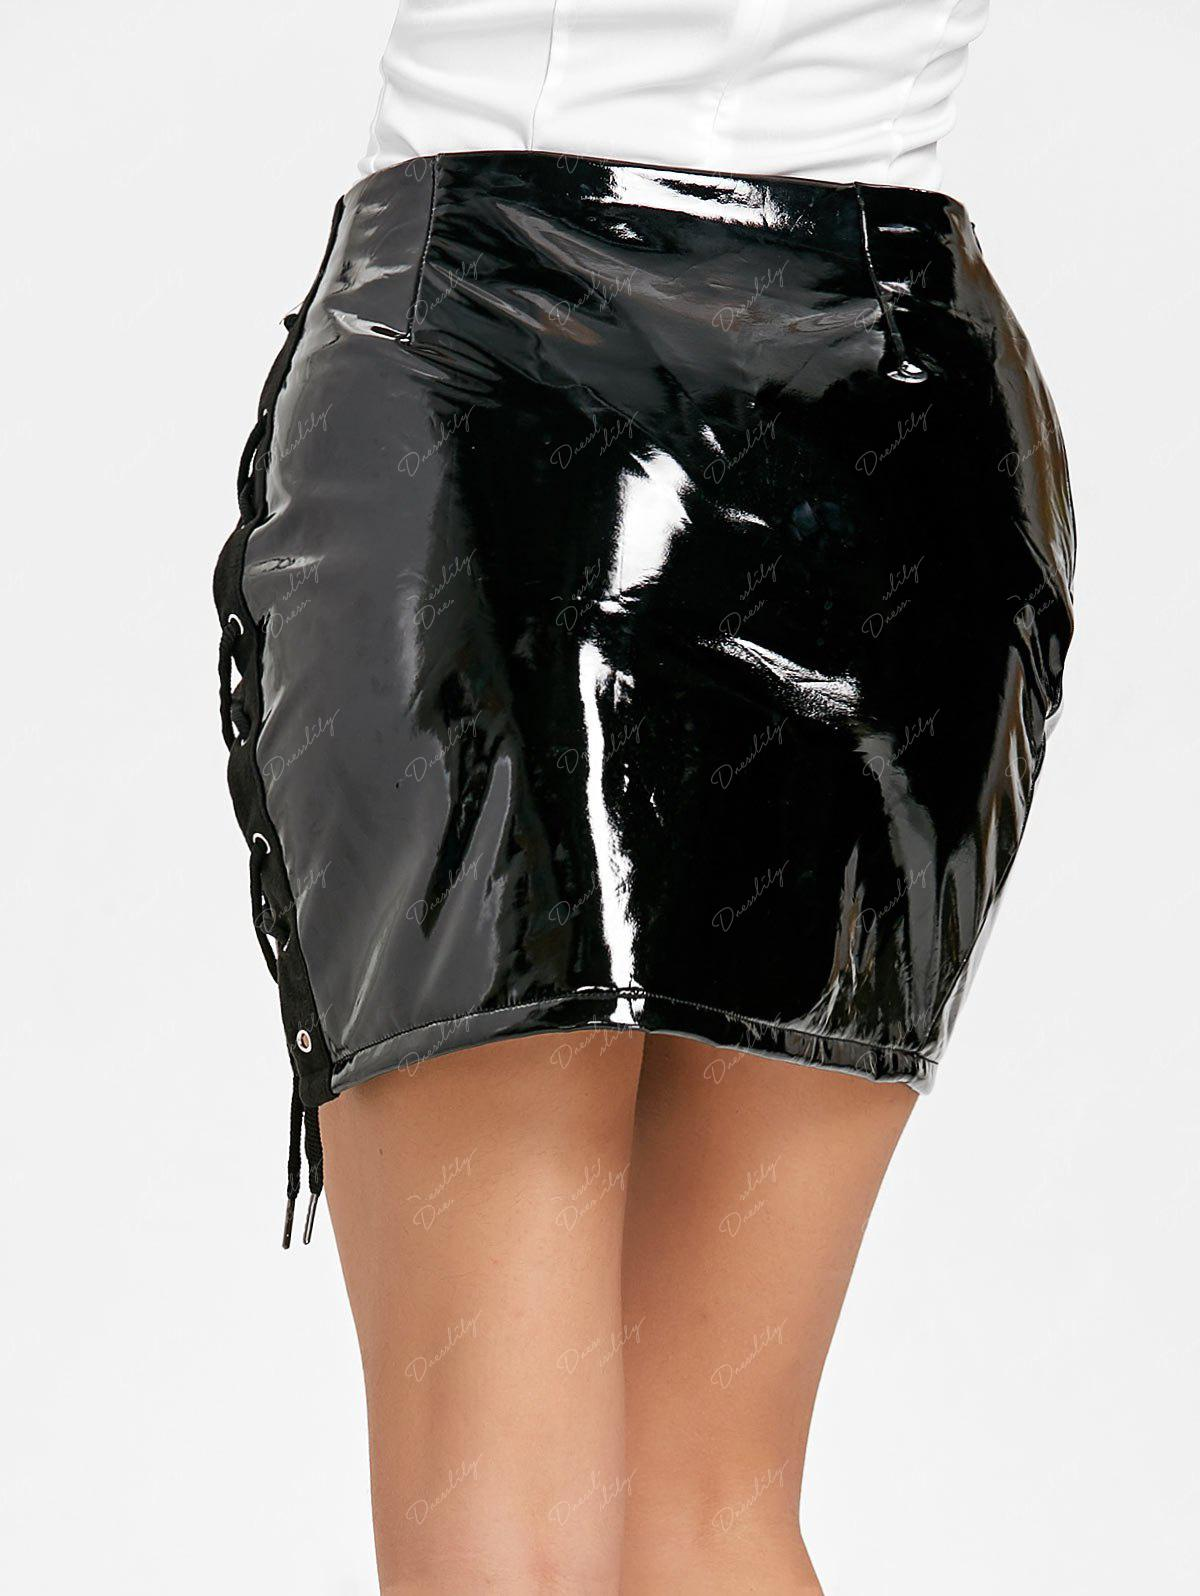 Curious.. latex skirts lace up back agree